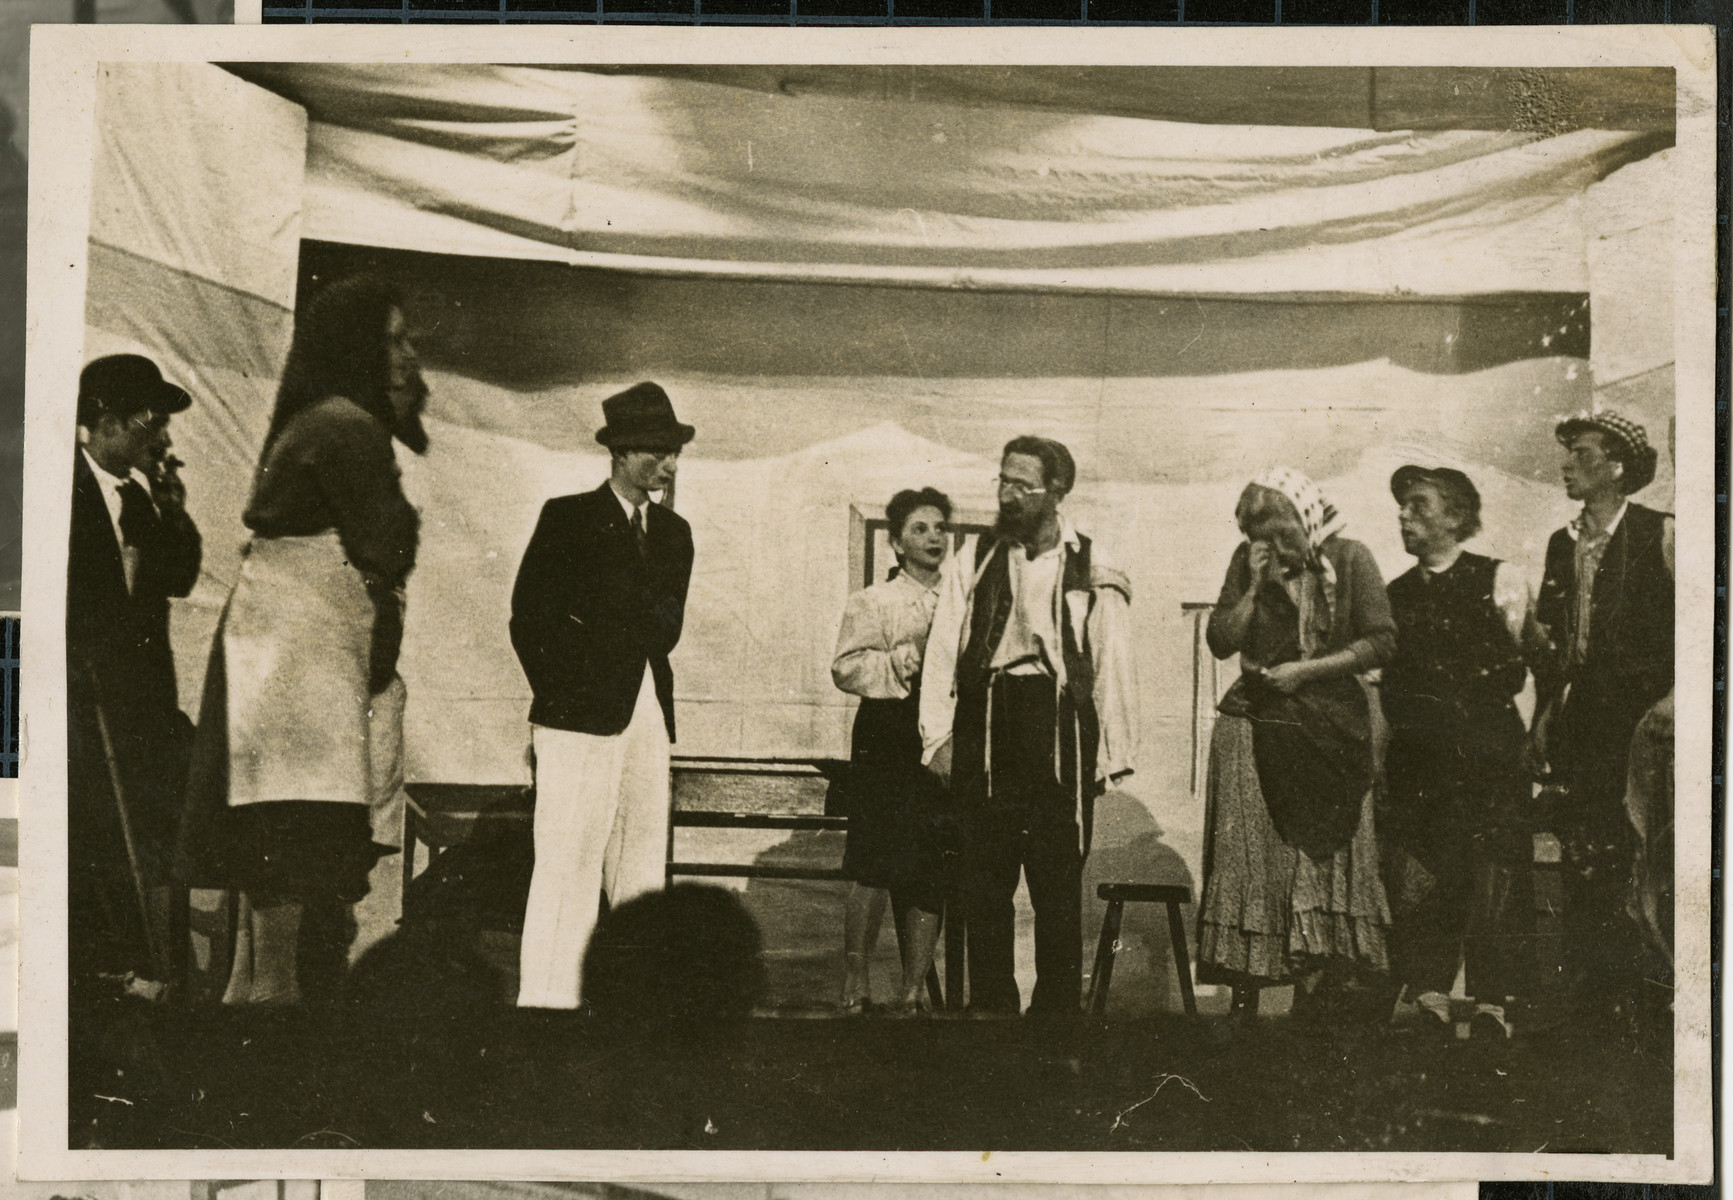 The theater troupe in the Bamberg displaced persons camp performs Sholom Aleichem's Die Grosse Genvinz, directed by Solomon Zynstein.